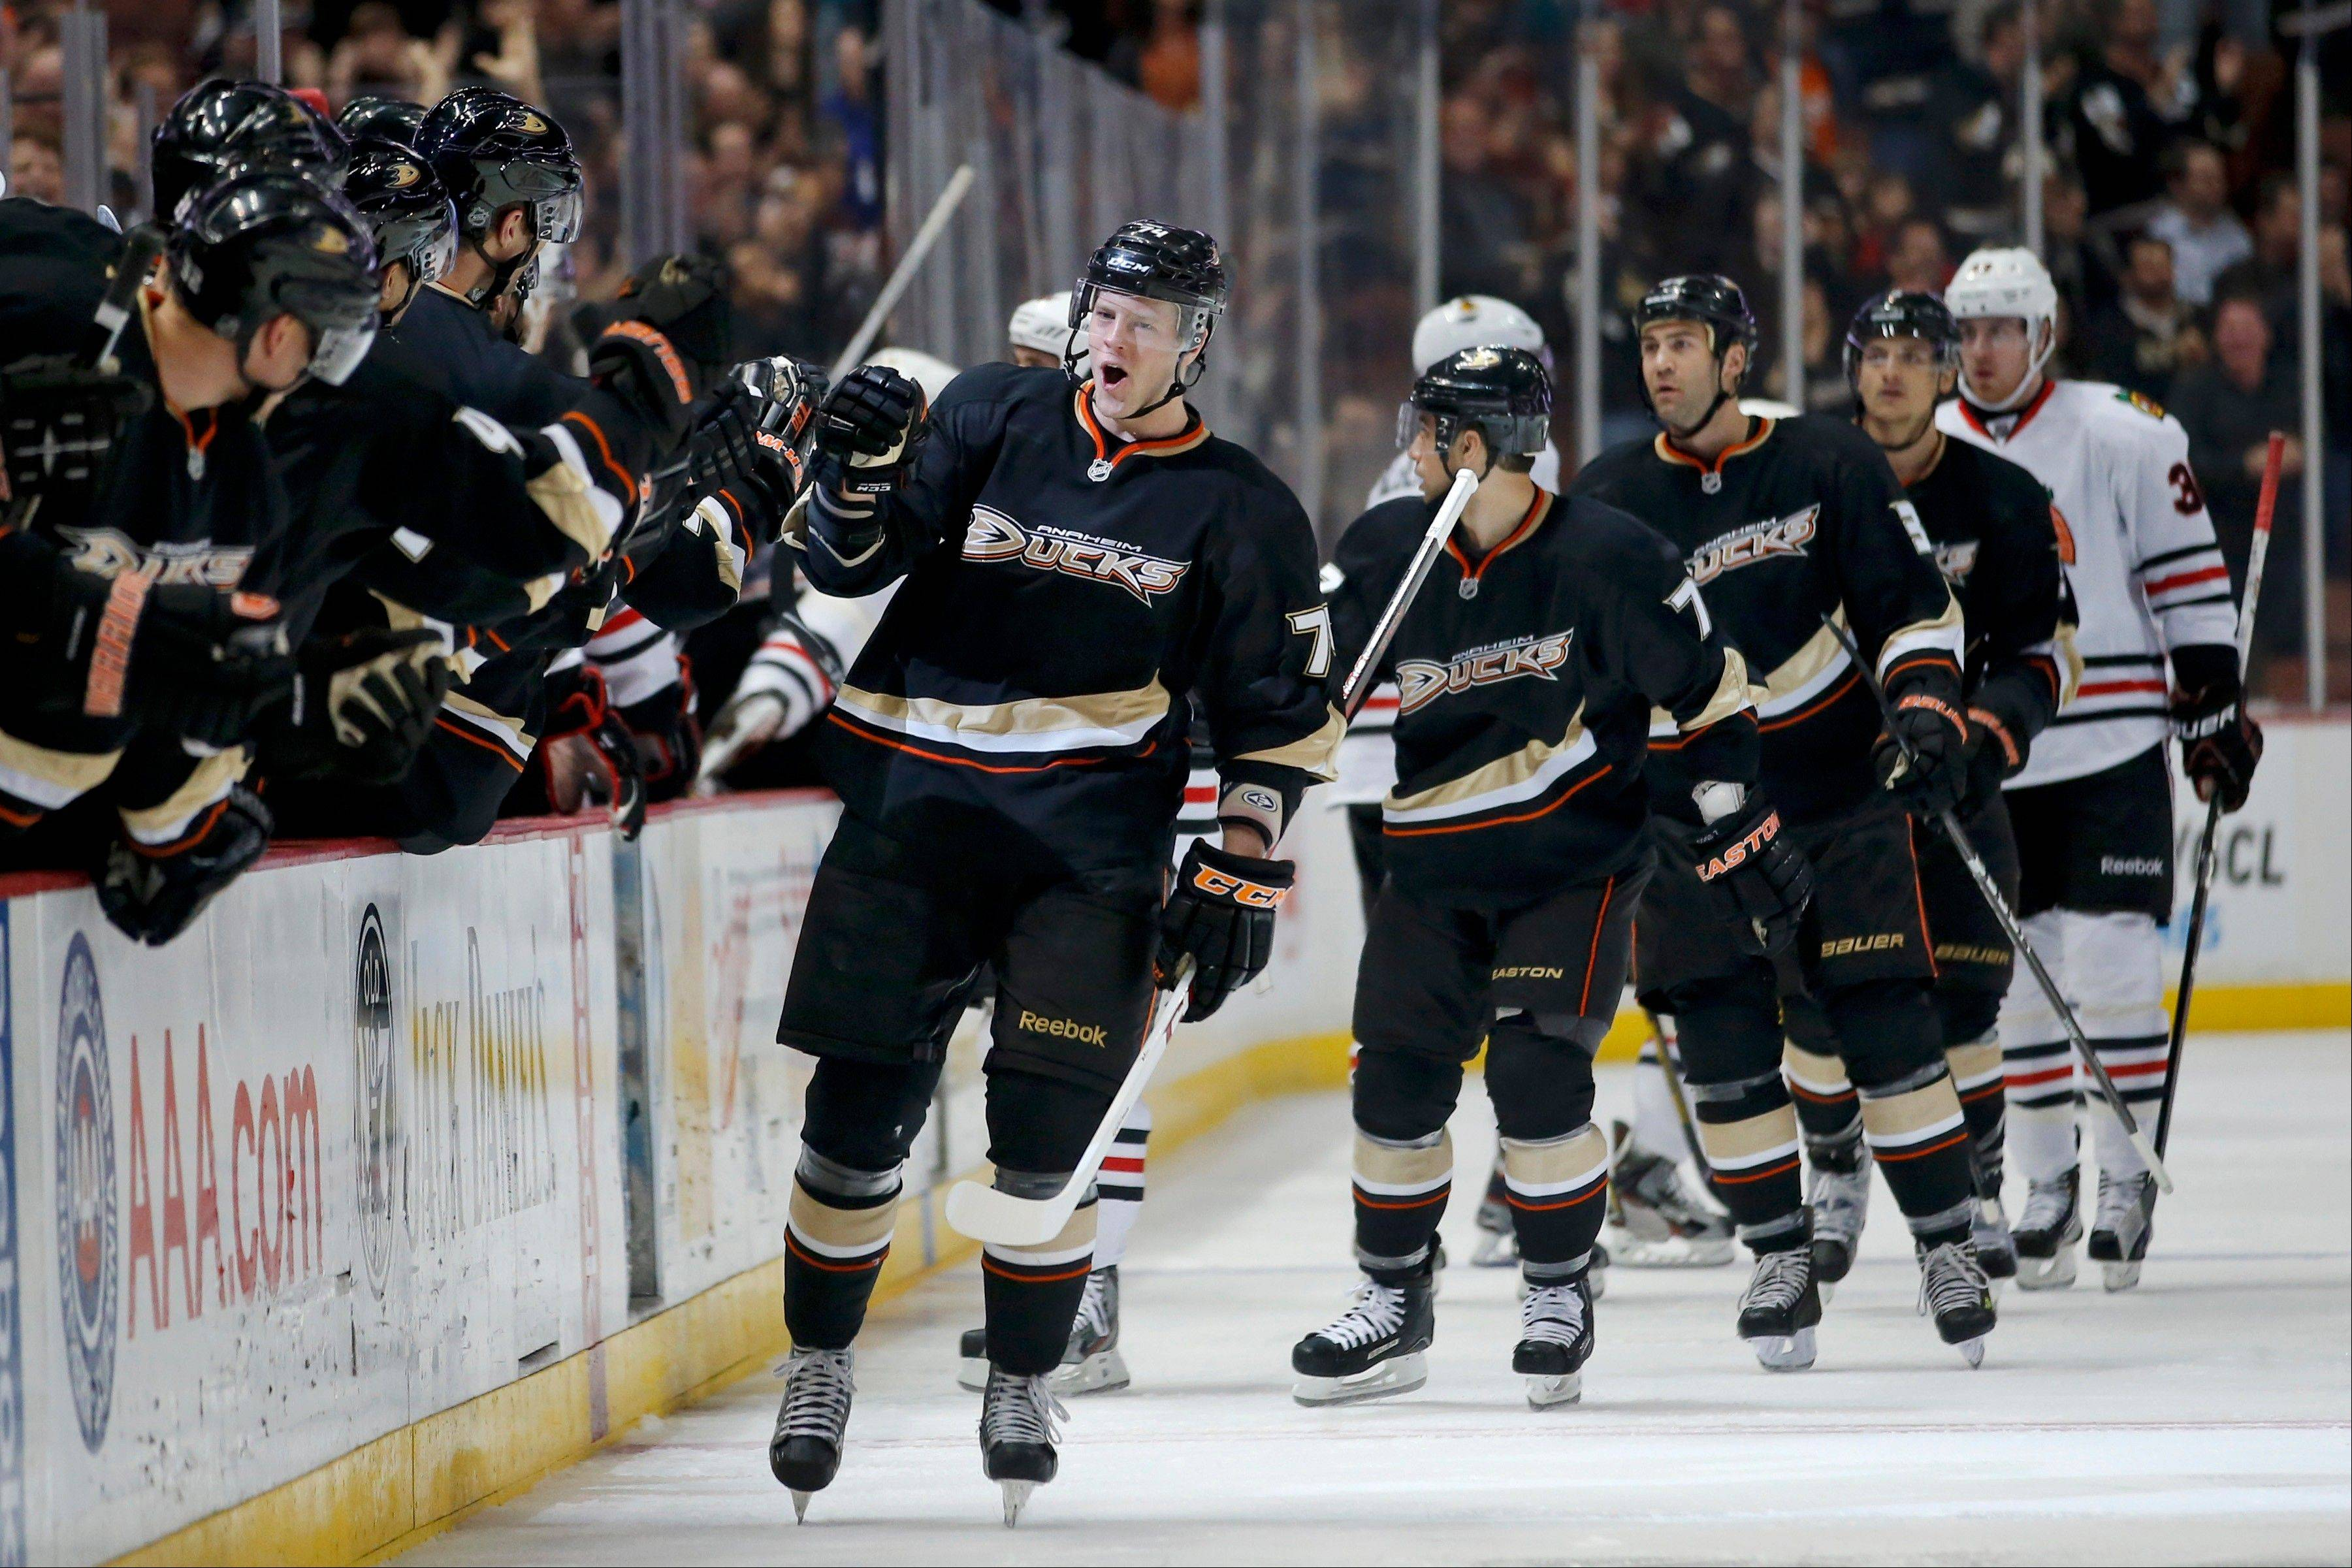 Anaheim Ducks' Peter Holland, center, celebrates his goal against the Chicago Blackhawks during the first period.